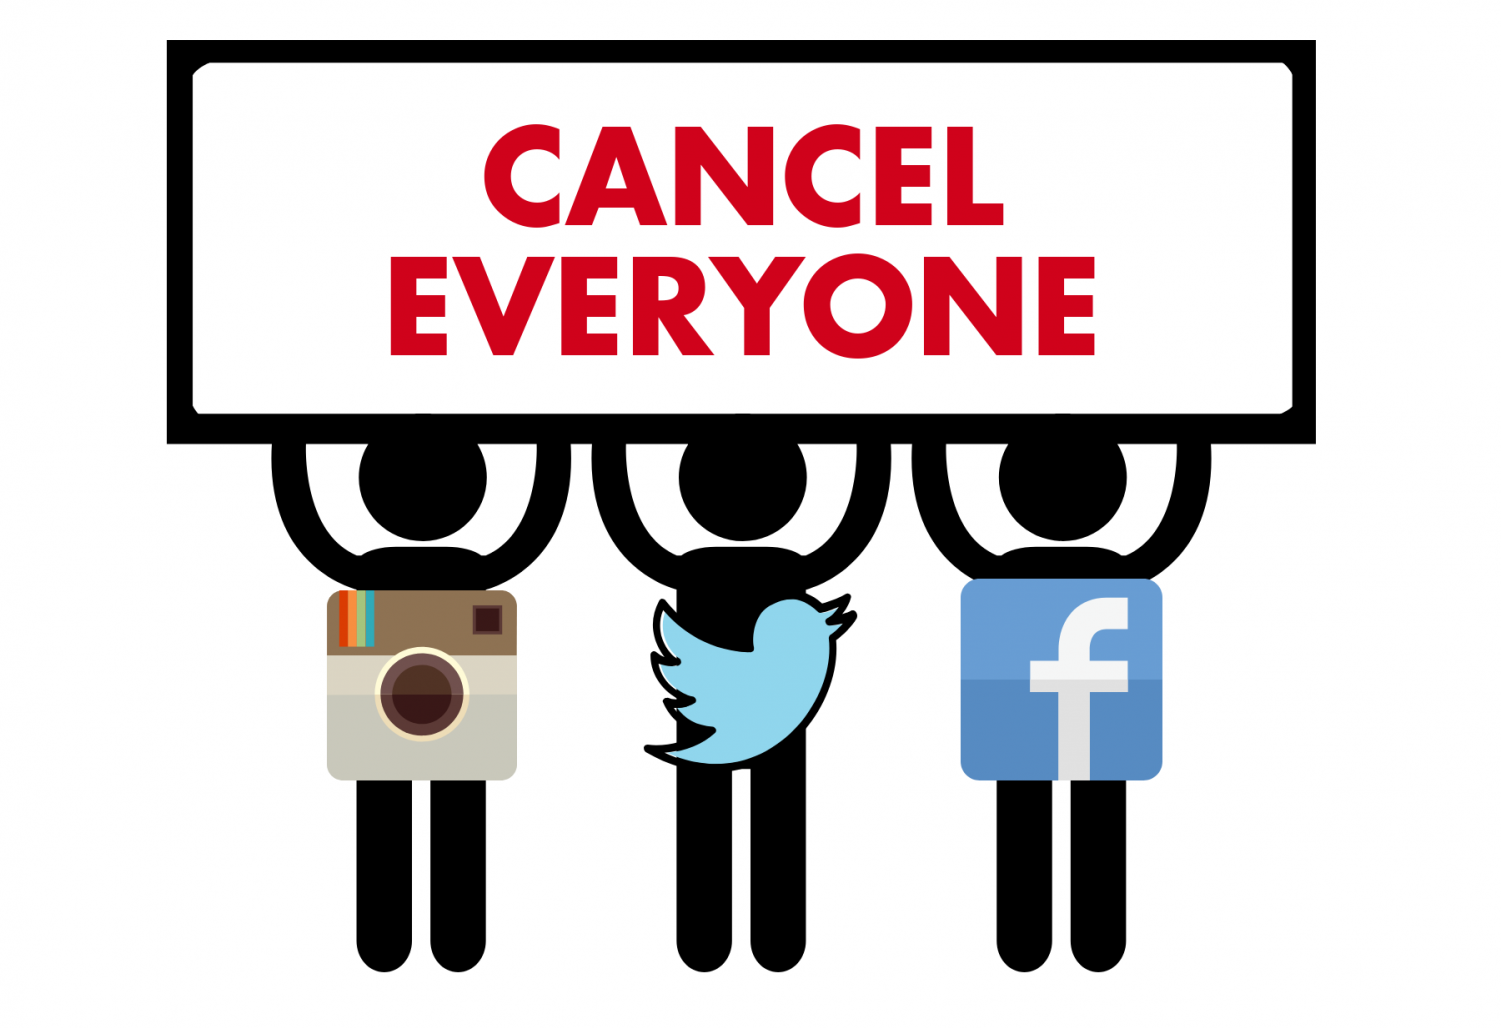 The detrimental psychological and moral effects of societies cancelled culture are heightened by social media.